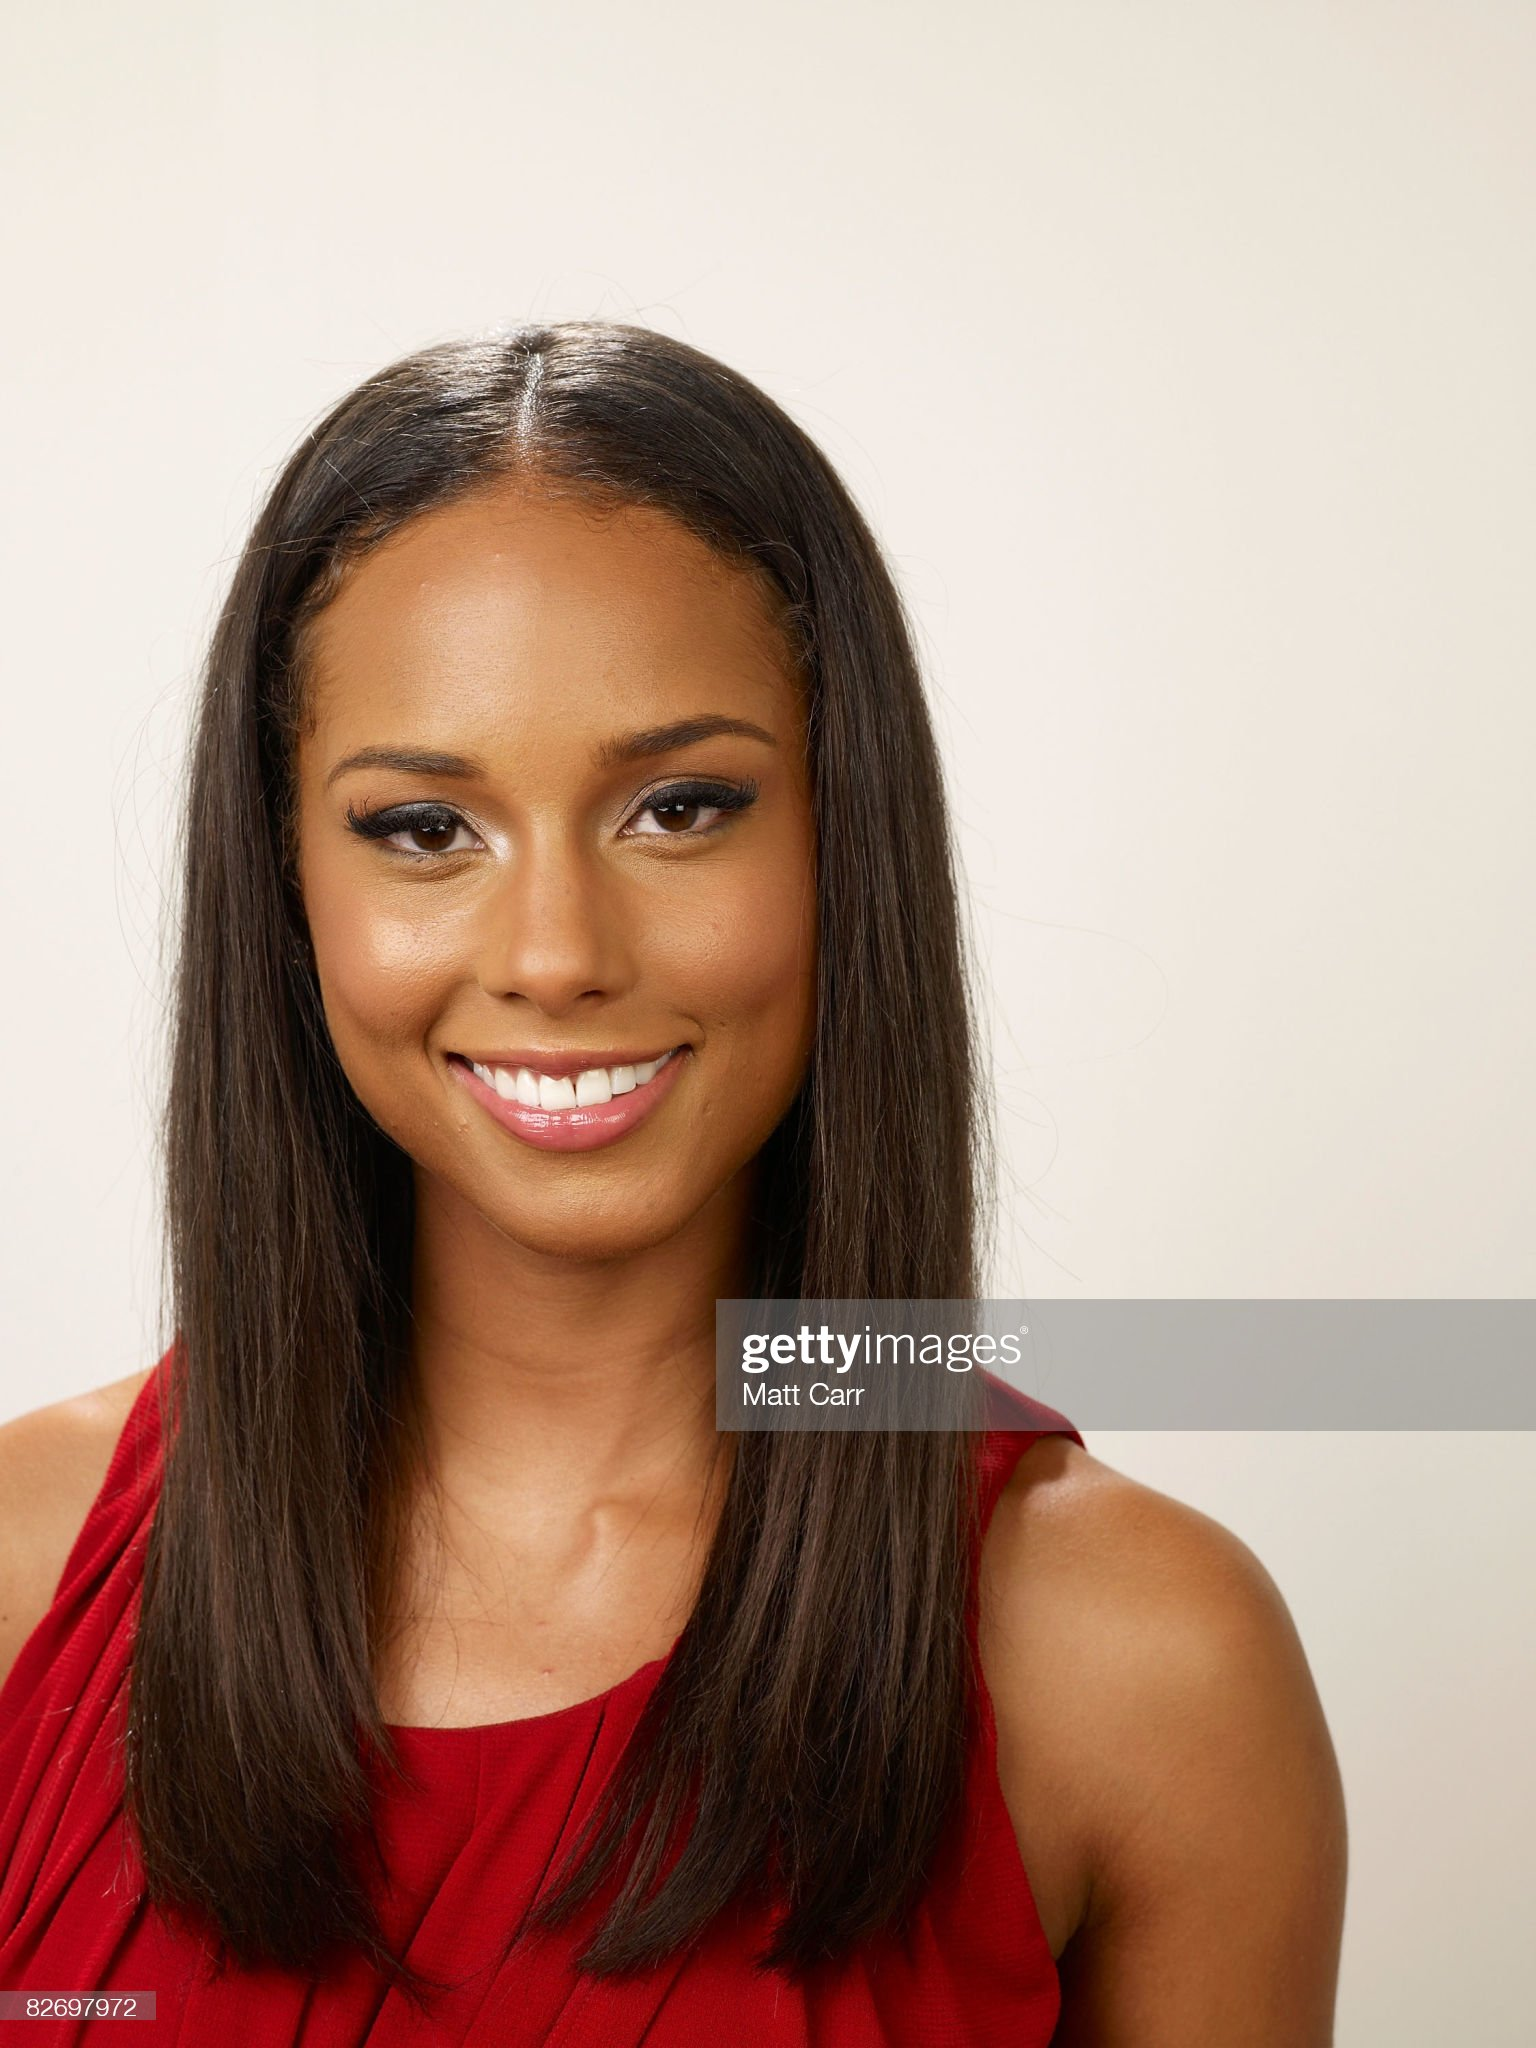 DEBATE sobre guapura de famosos y famosas - Página 3 Actress-alicia-keys-from-the-film-the-secret-life-of-bees-poses-for-a-picture-id82697972?s=2048x2048